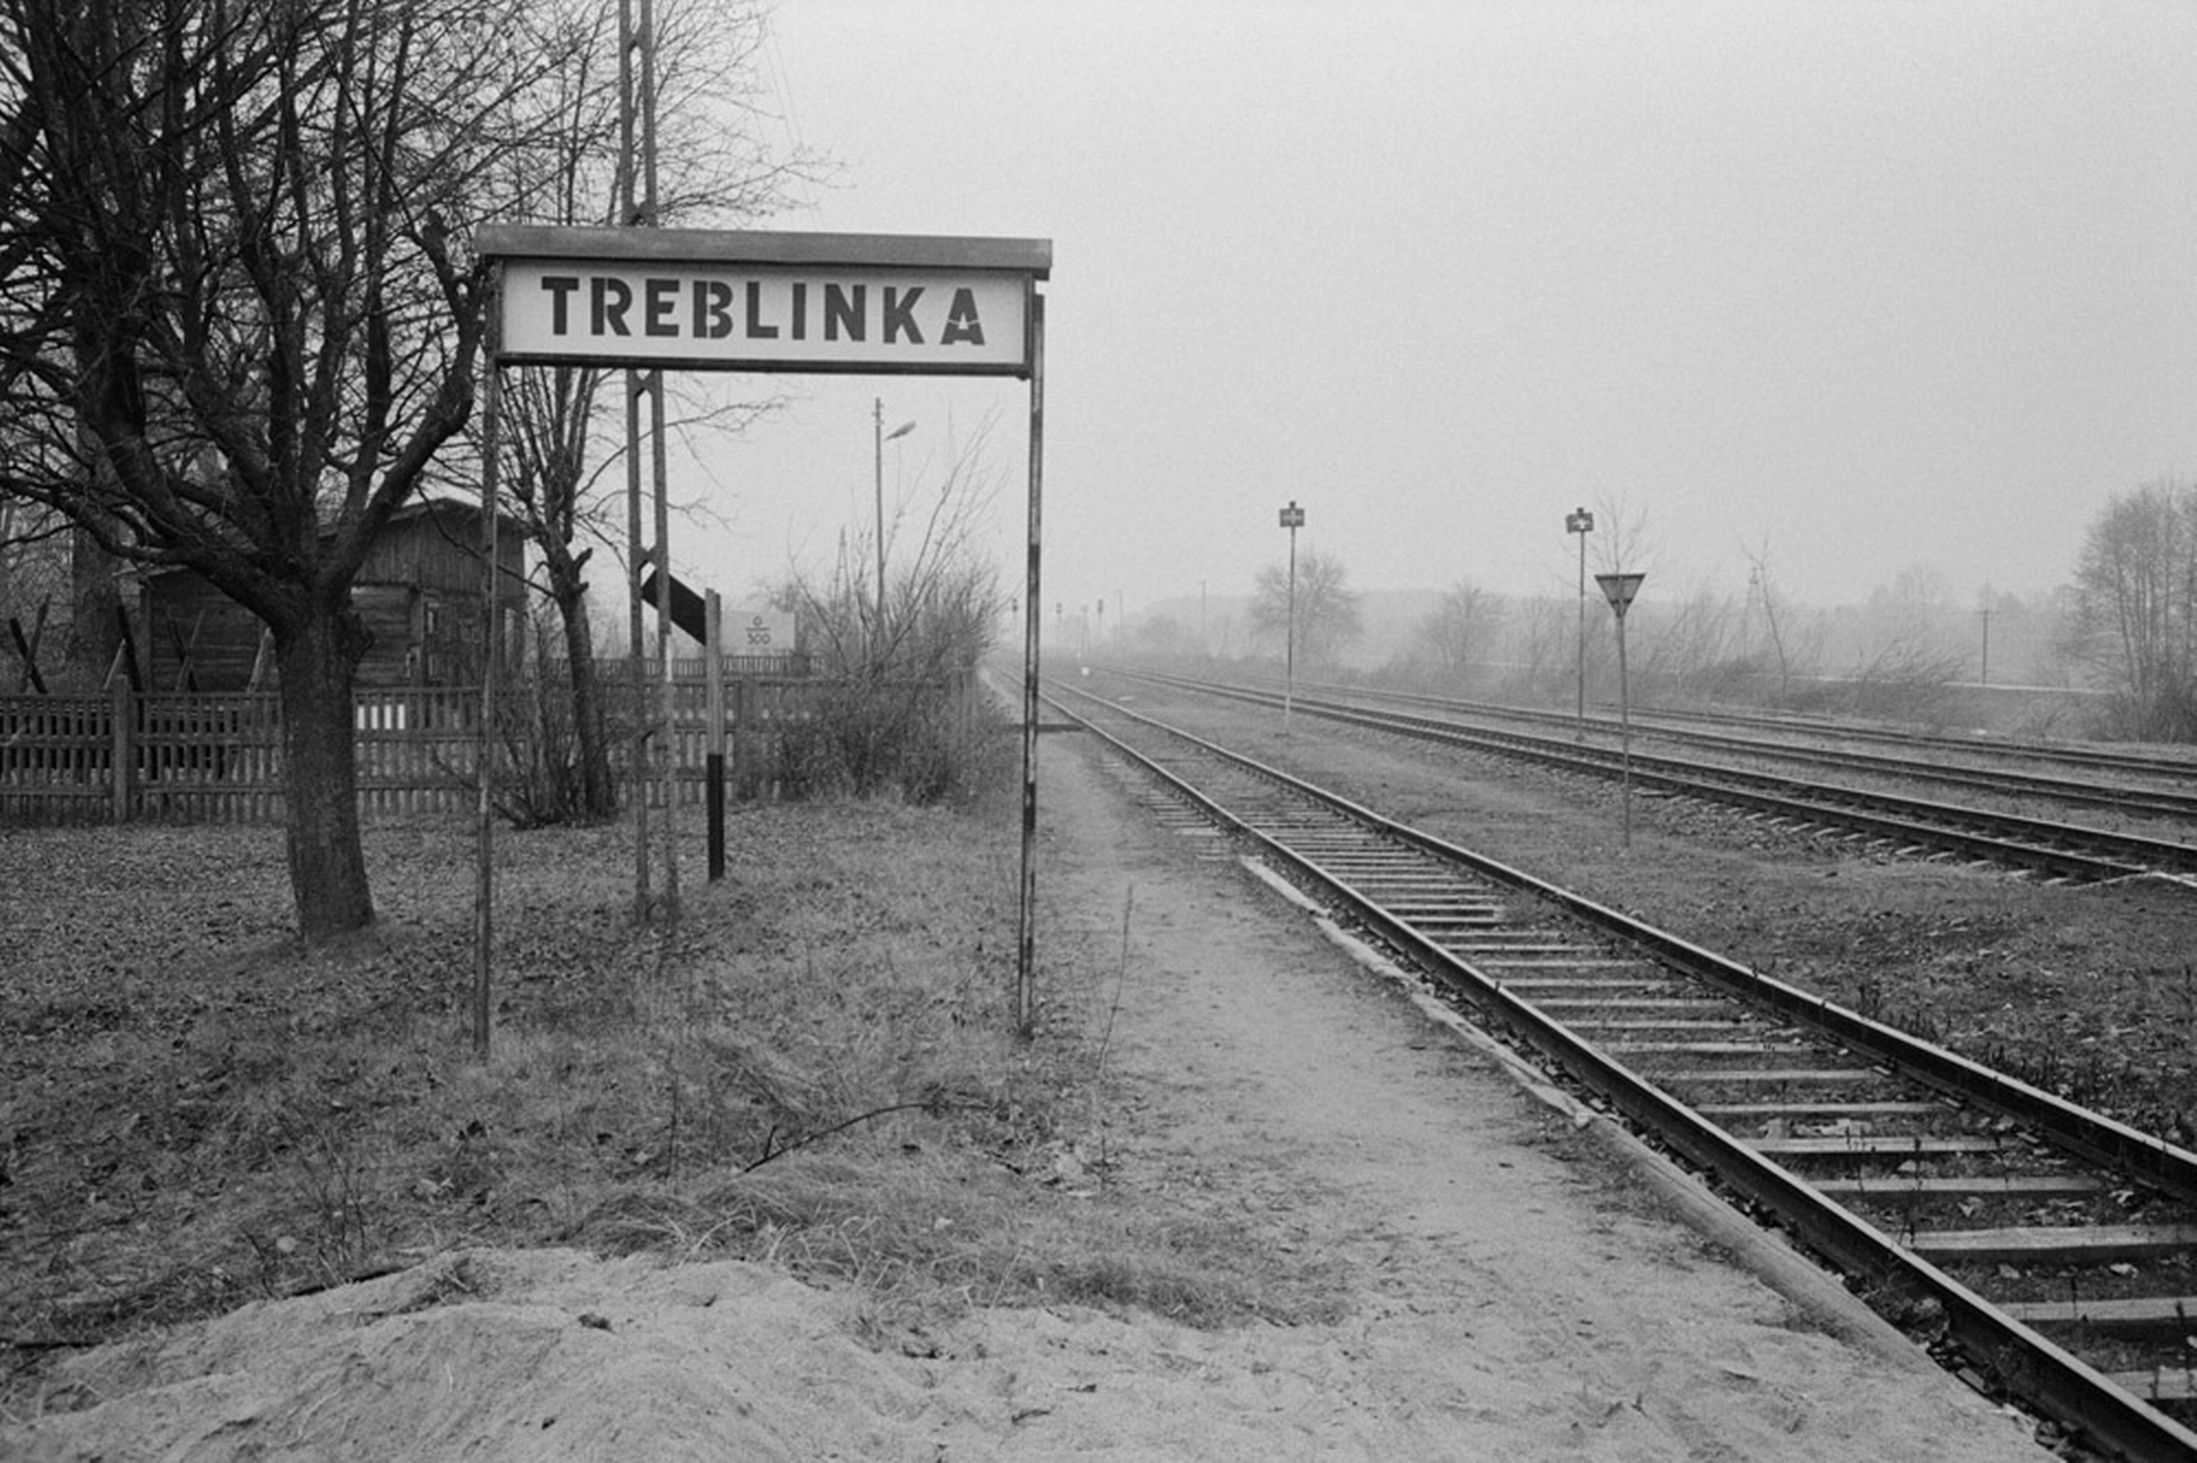 https://i2.wp.com/content.kvue.com/photo/2016/02/20/1988-Poland-The-discontinued-railroad-stop-at-the-village-of-Treblinka-once-saw-the-deportation-transports-pass-through-on-their-way-to-1247990_1456030983277_343179_ver1.0.jpg